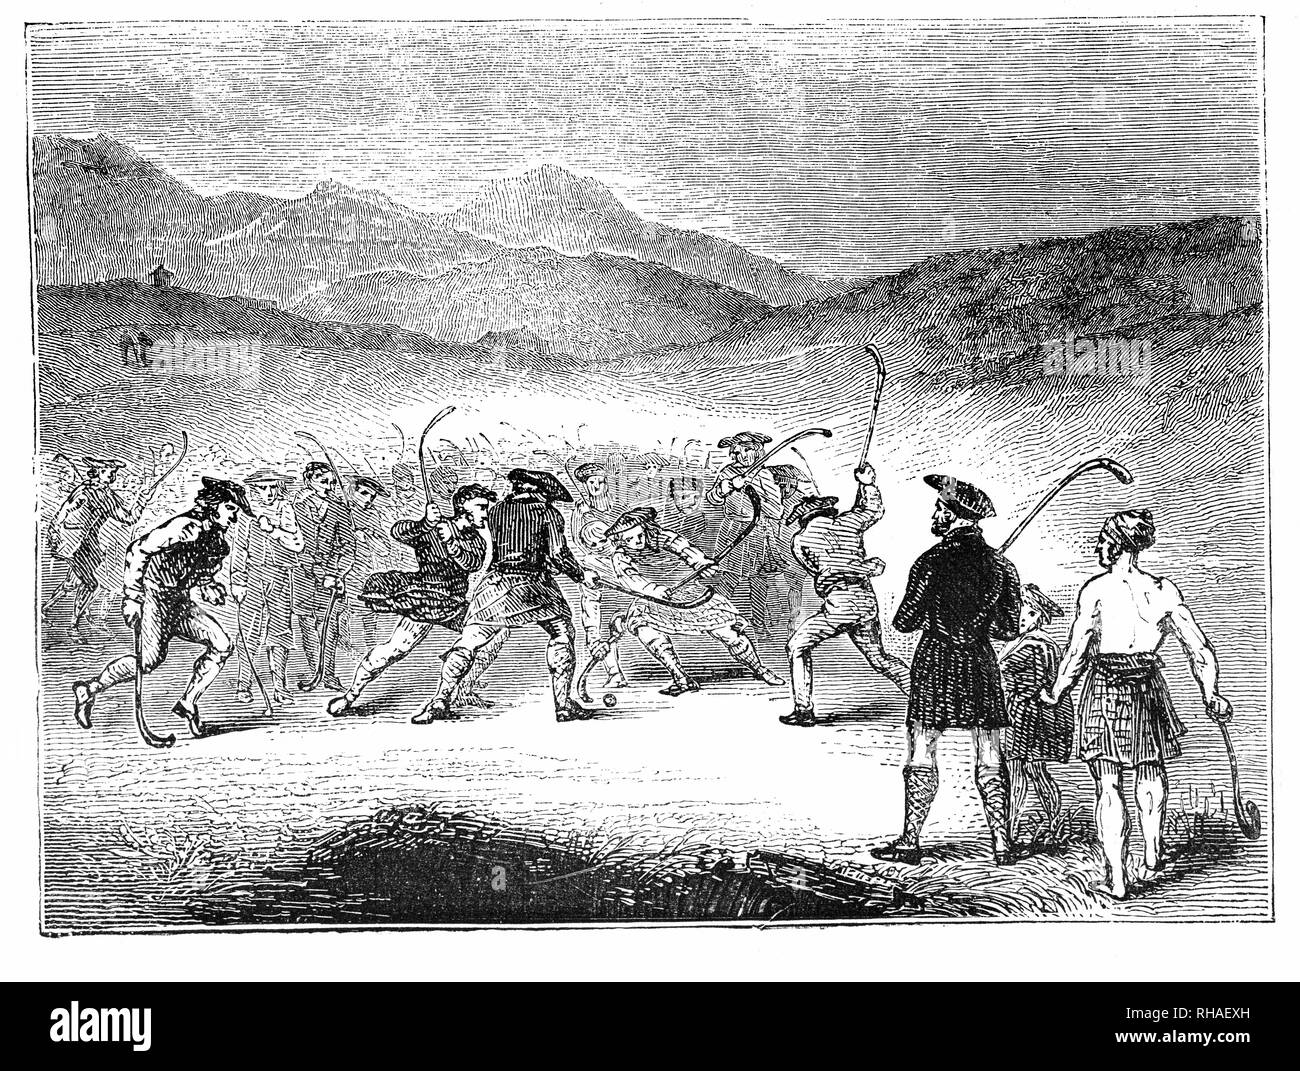 Shinty is a team game played with sticks and a ball, now played mainly in the Scottish Highlands, and amongst Highland migrants to the big cities of Scotland. It was formerly more widespread in Scotland, and was even played for a considerable time in northern England and other areas in the world where Scottish Highlanders migrated. - Stock Image